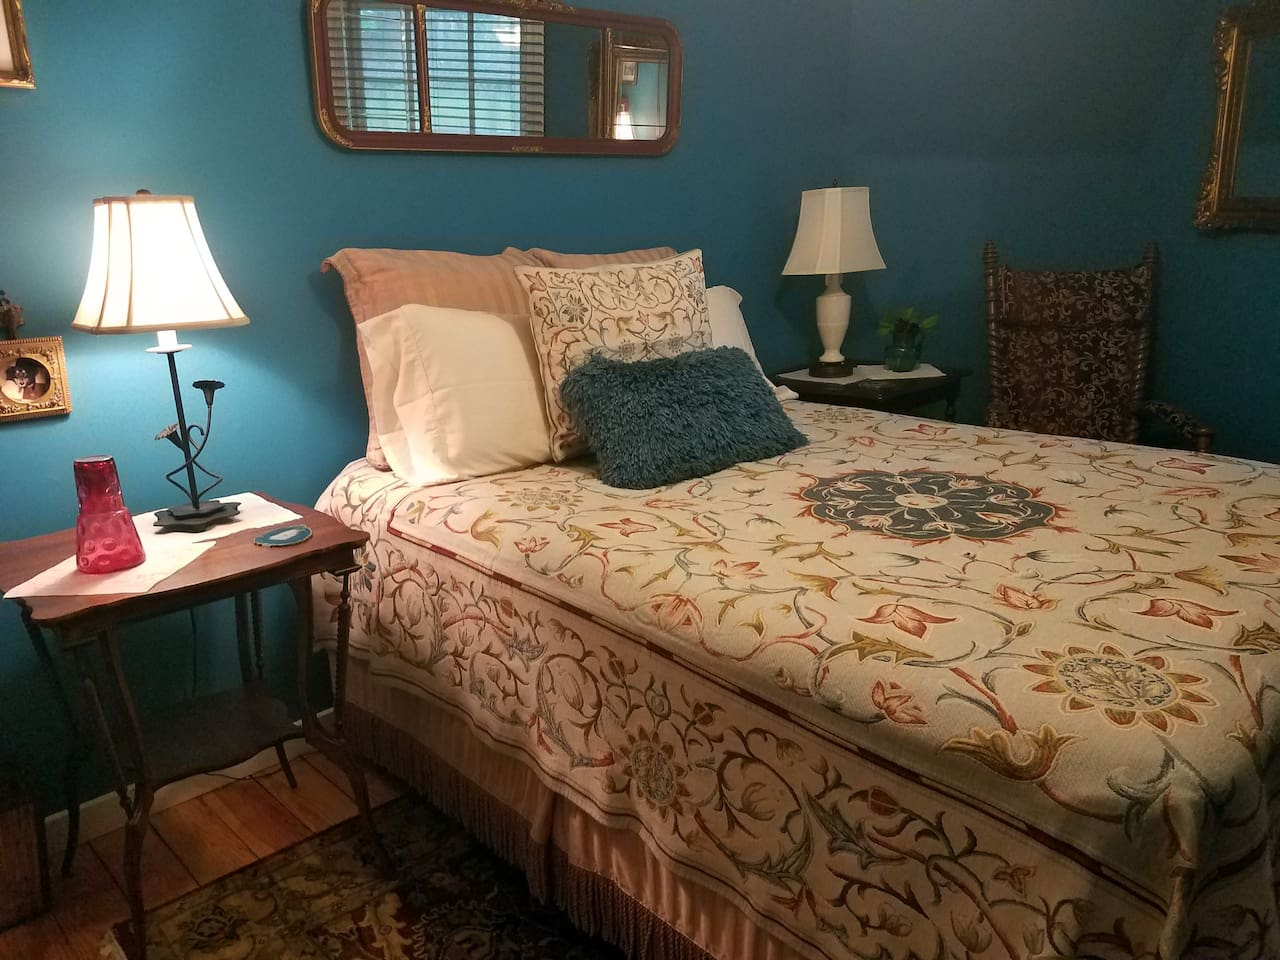 Superiorly comfortable queen bed in a softly lit room guarantee a good night's sleep!